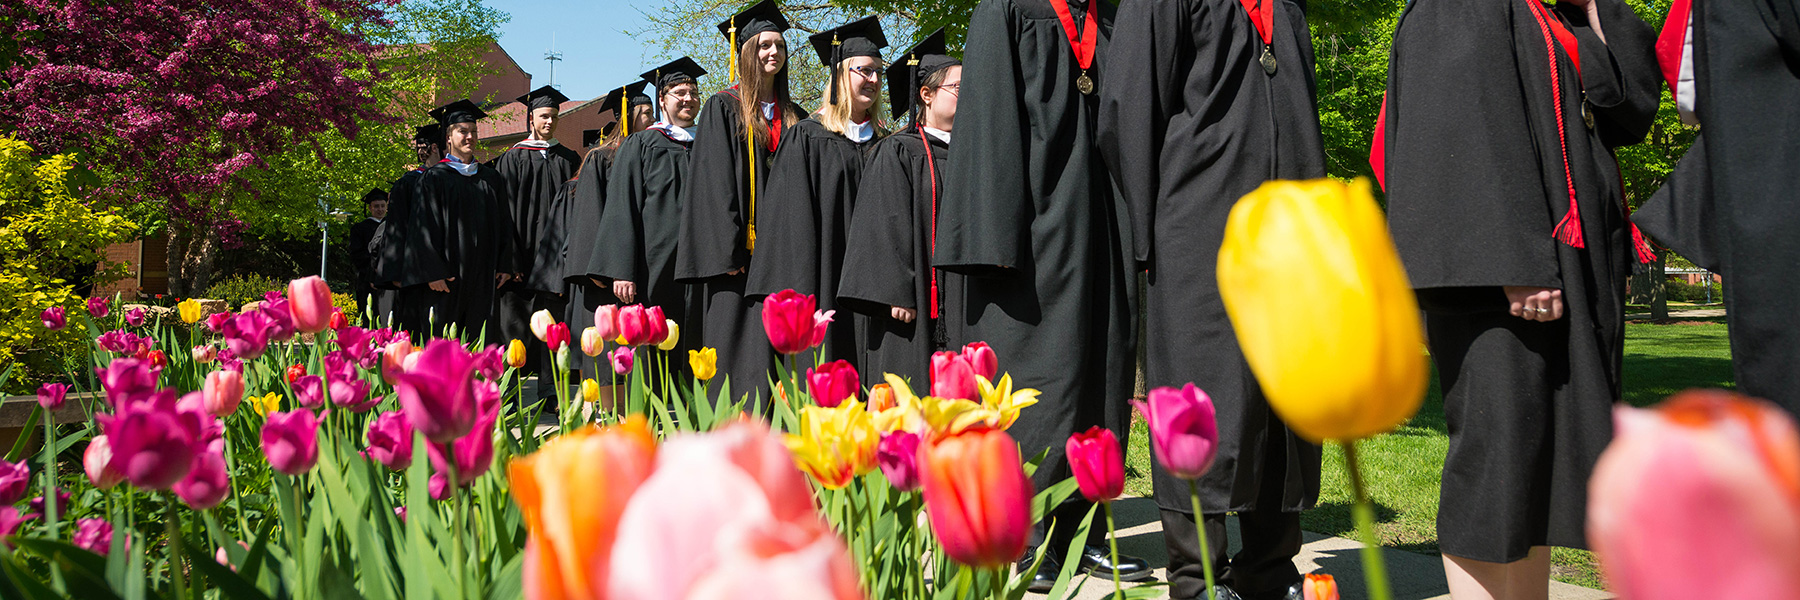 graduates walk by a bed of tulips on the campus